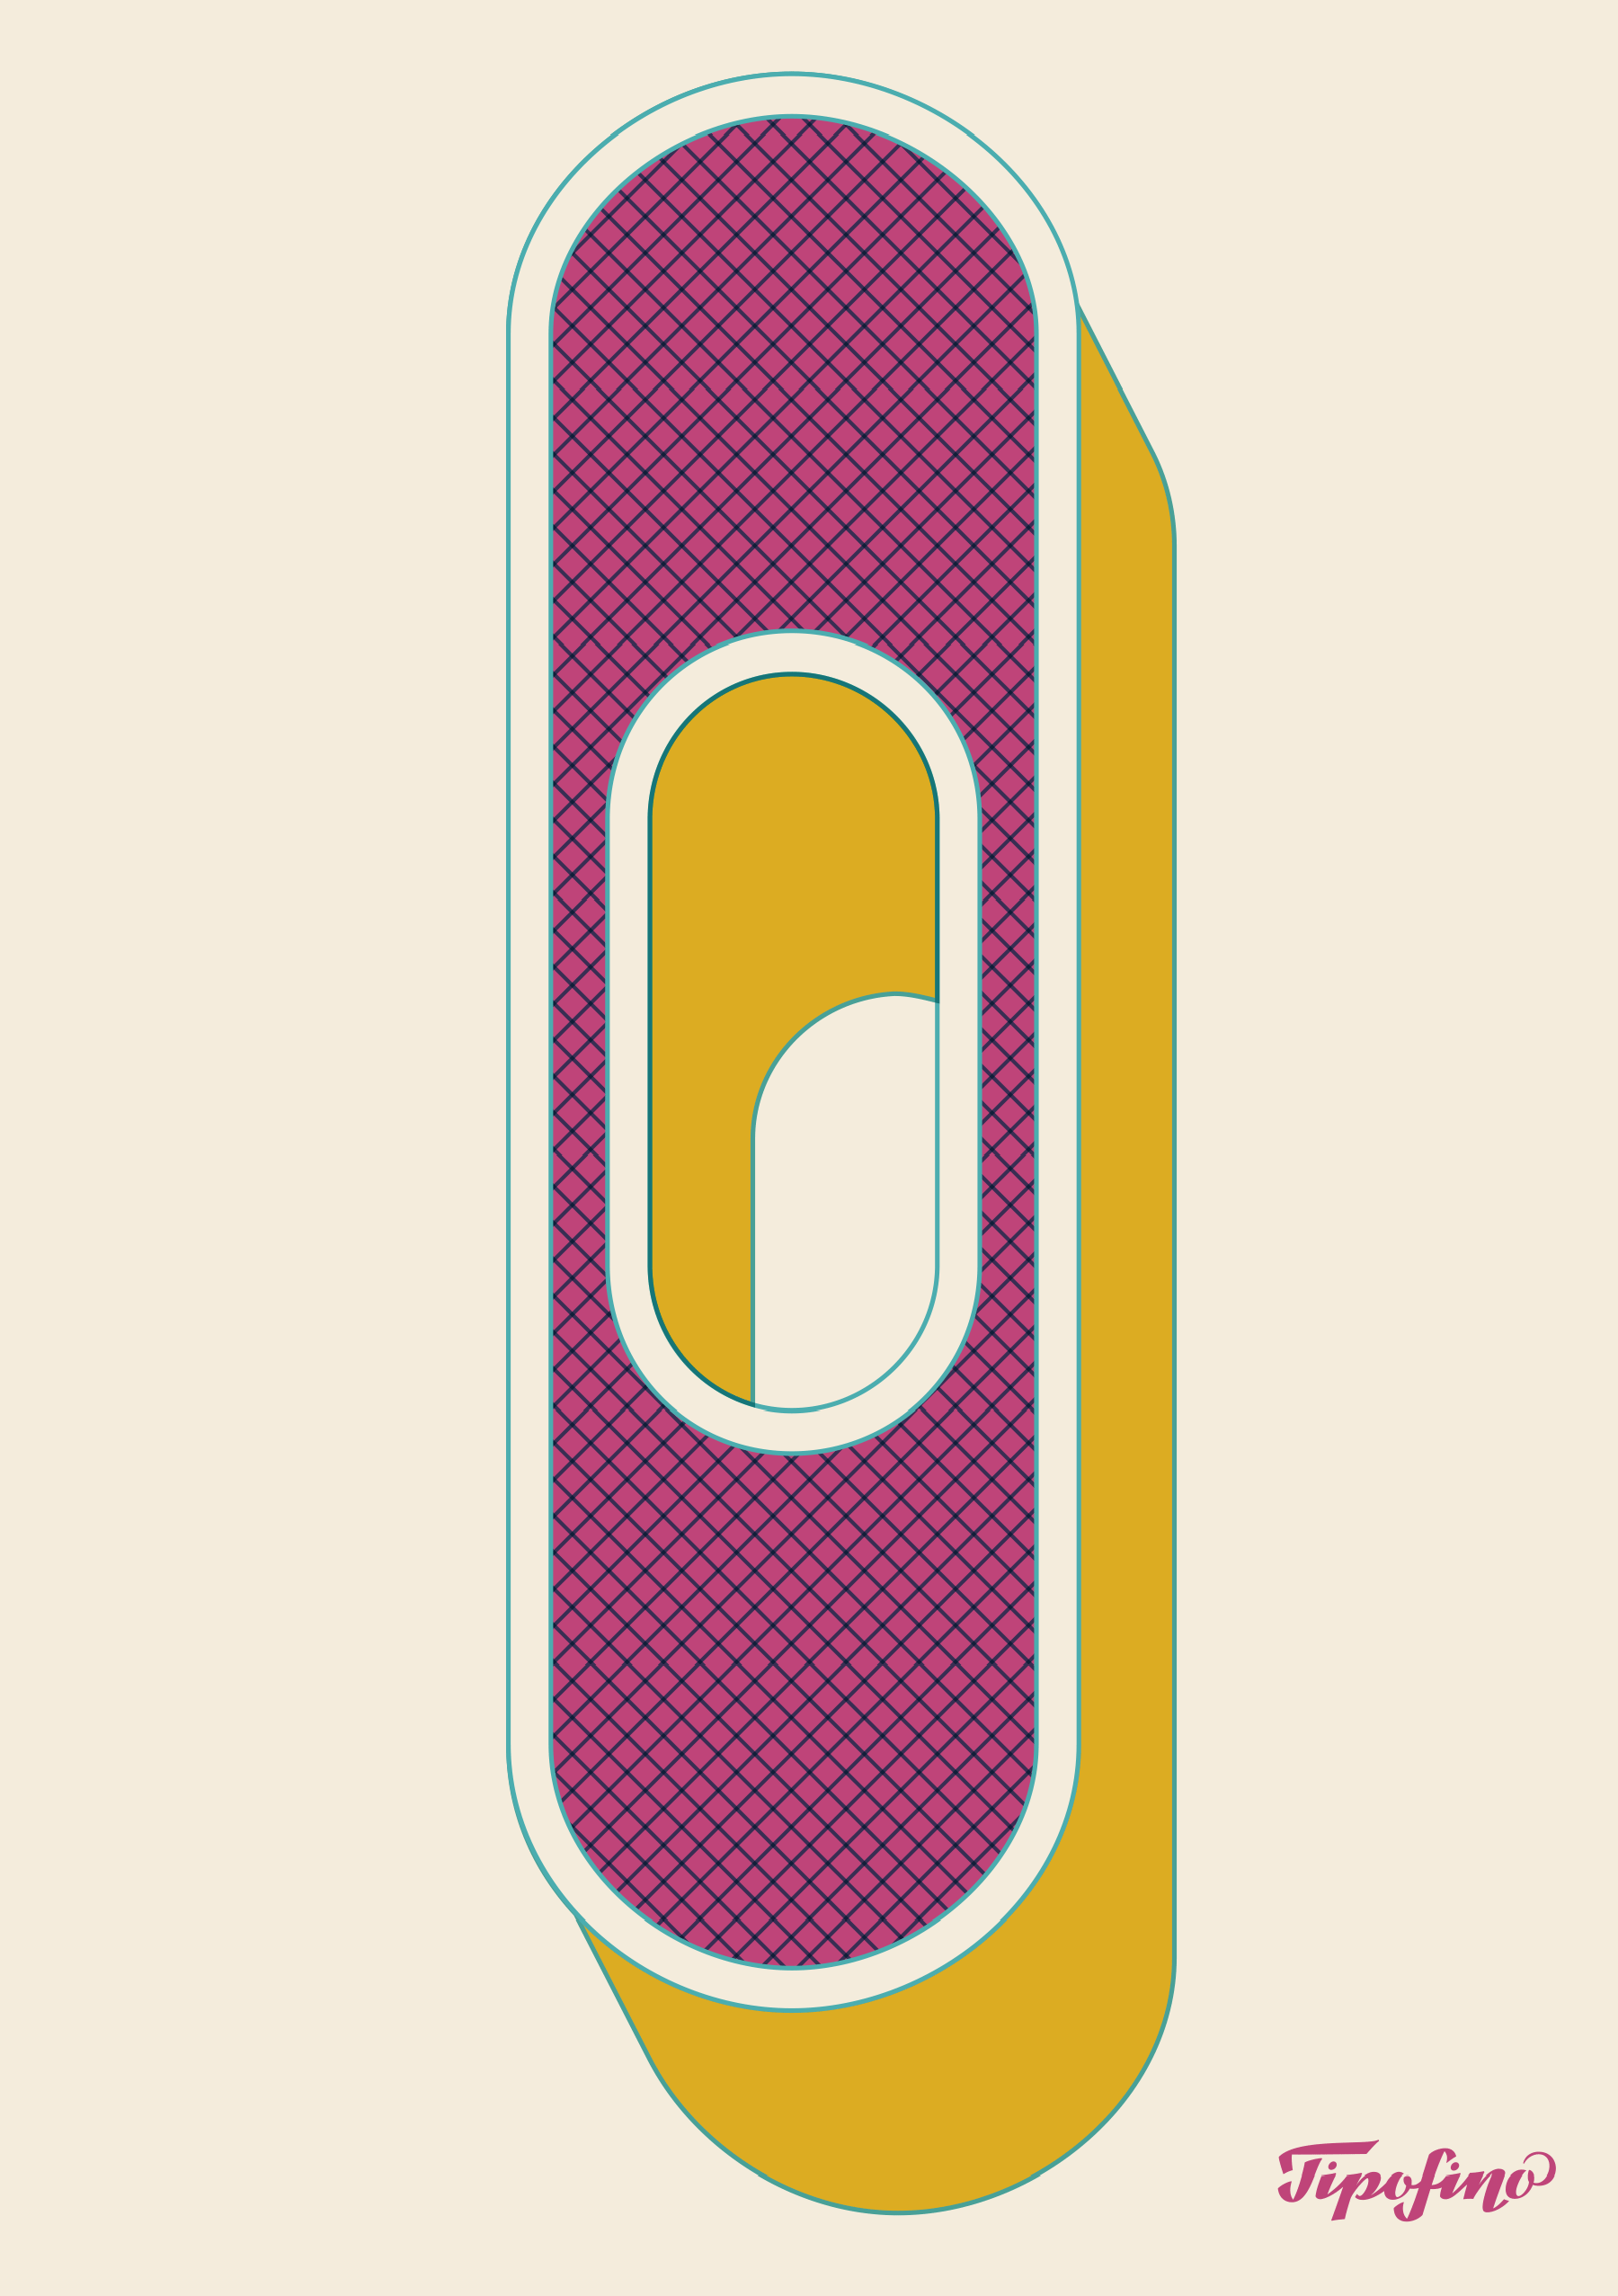 Typographic Poster: «O Wood Type» for Tipofino